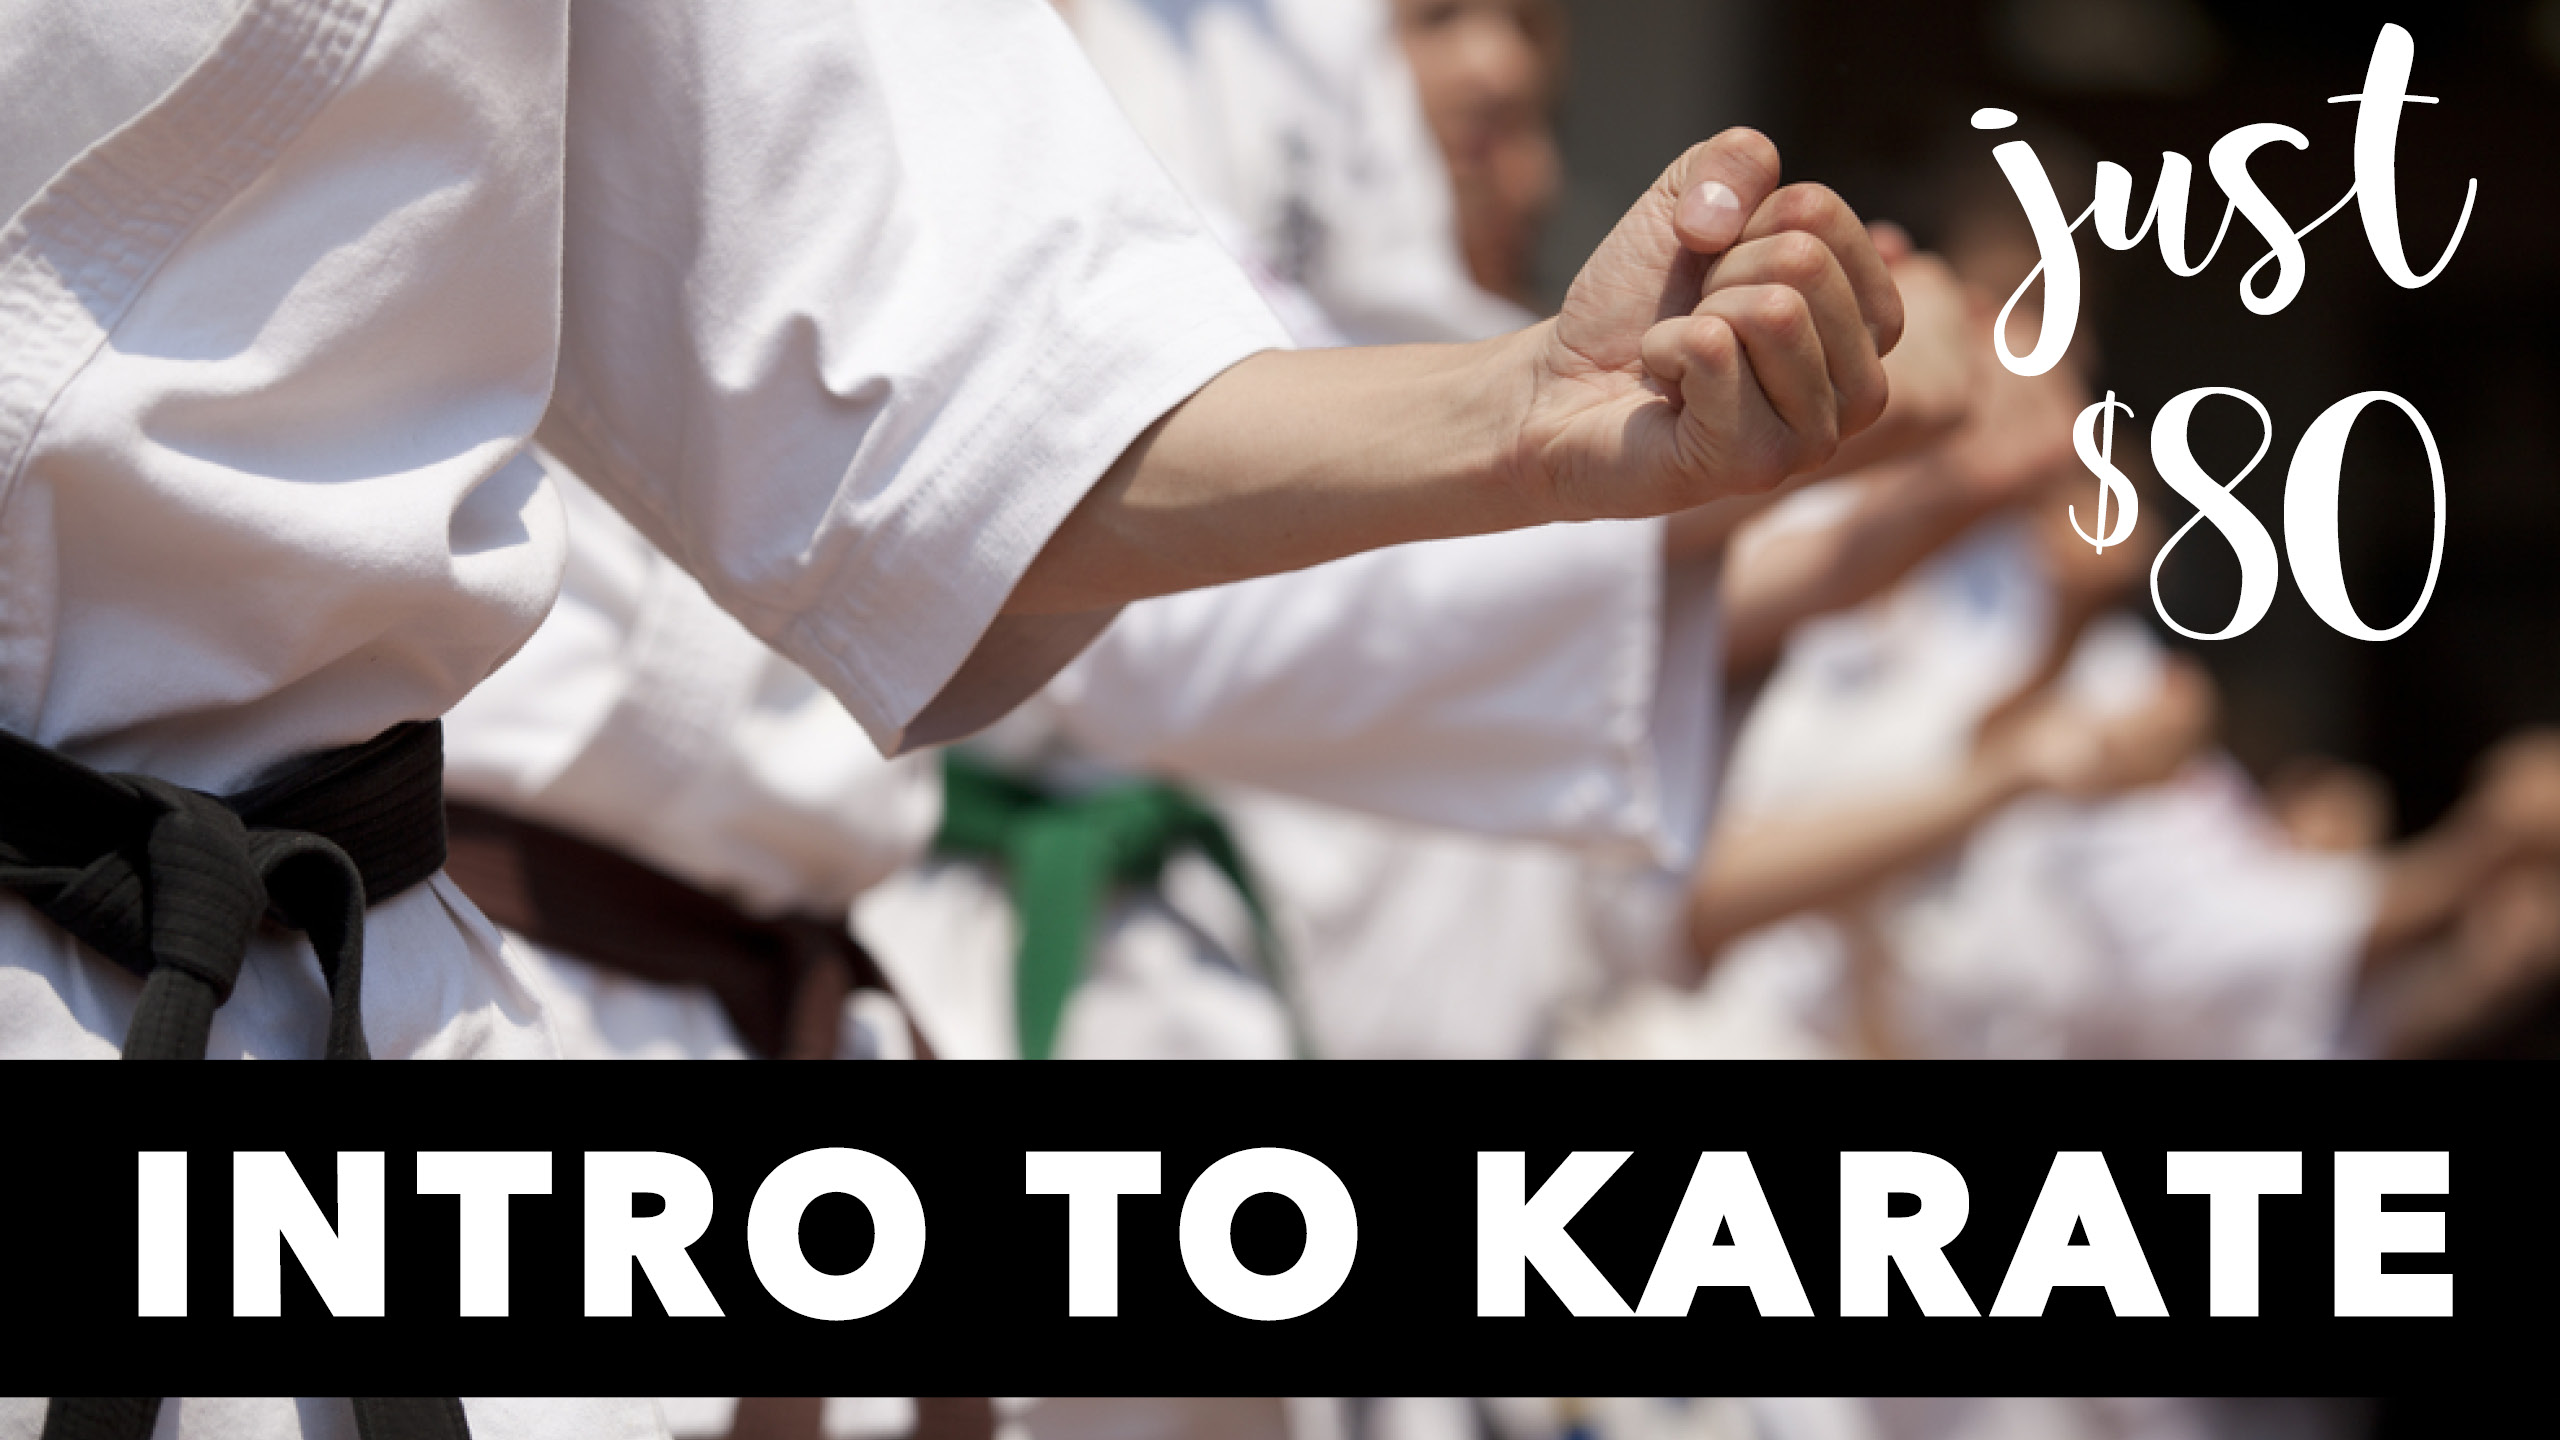 CCSKC_Marketing_Intro to Karate_Facebook Event Image